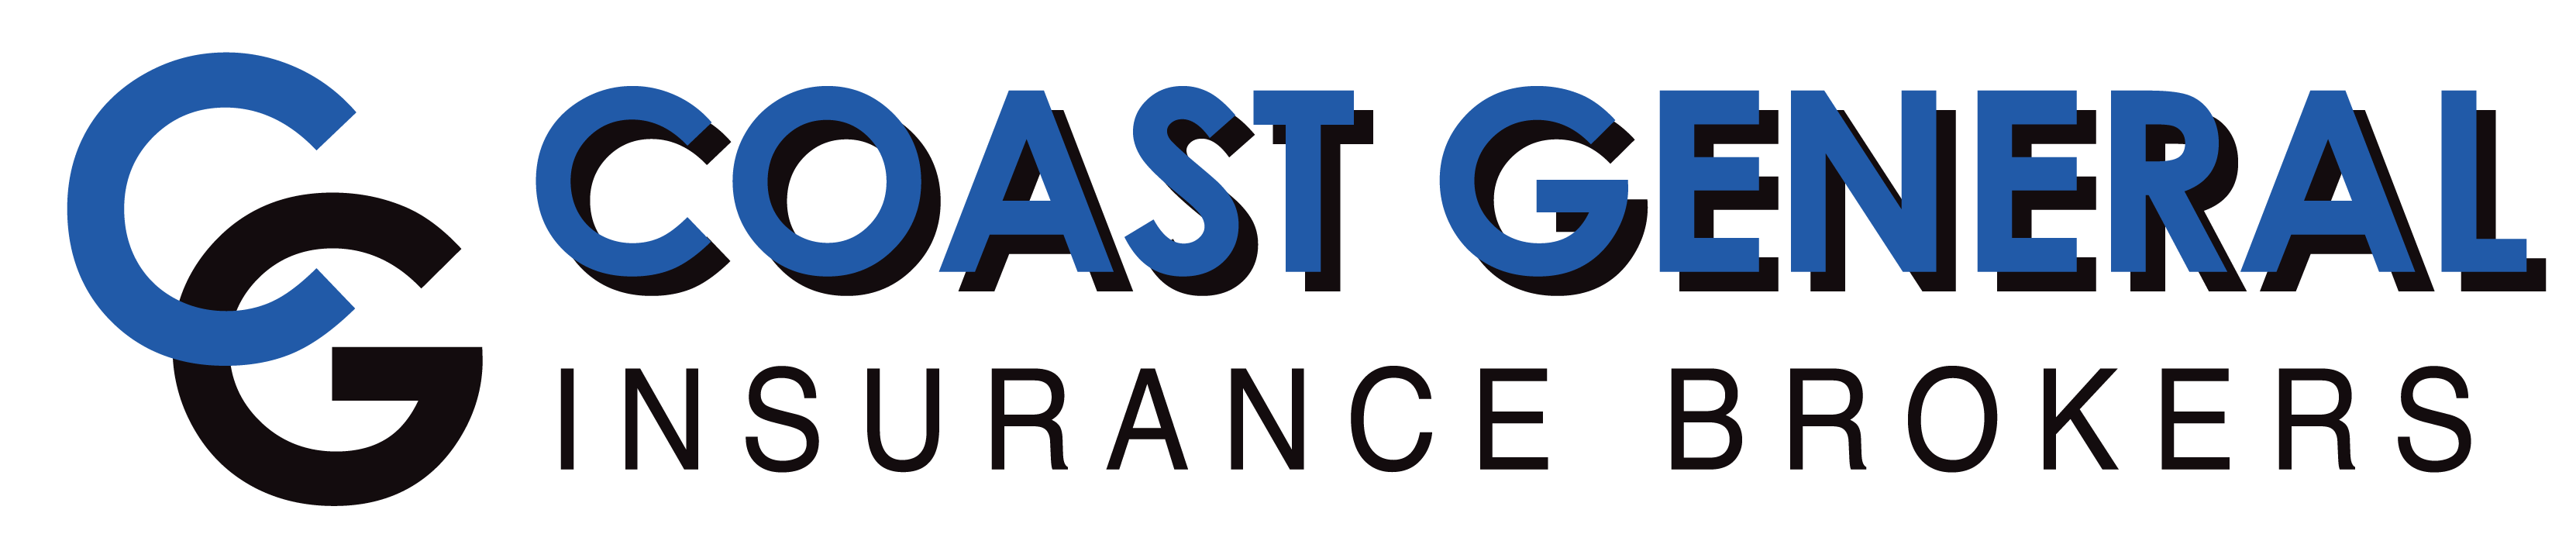 Coast General Insurance Brokers